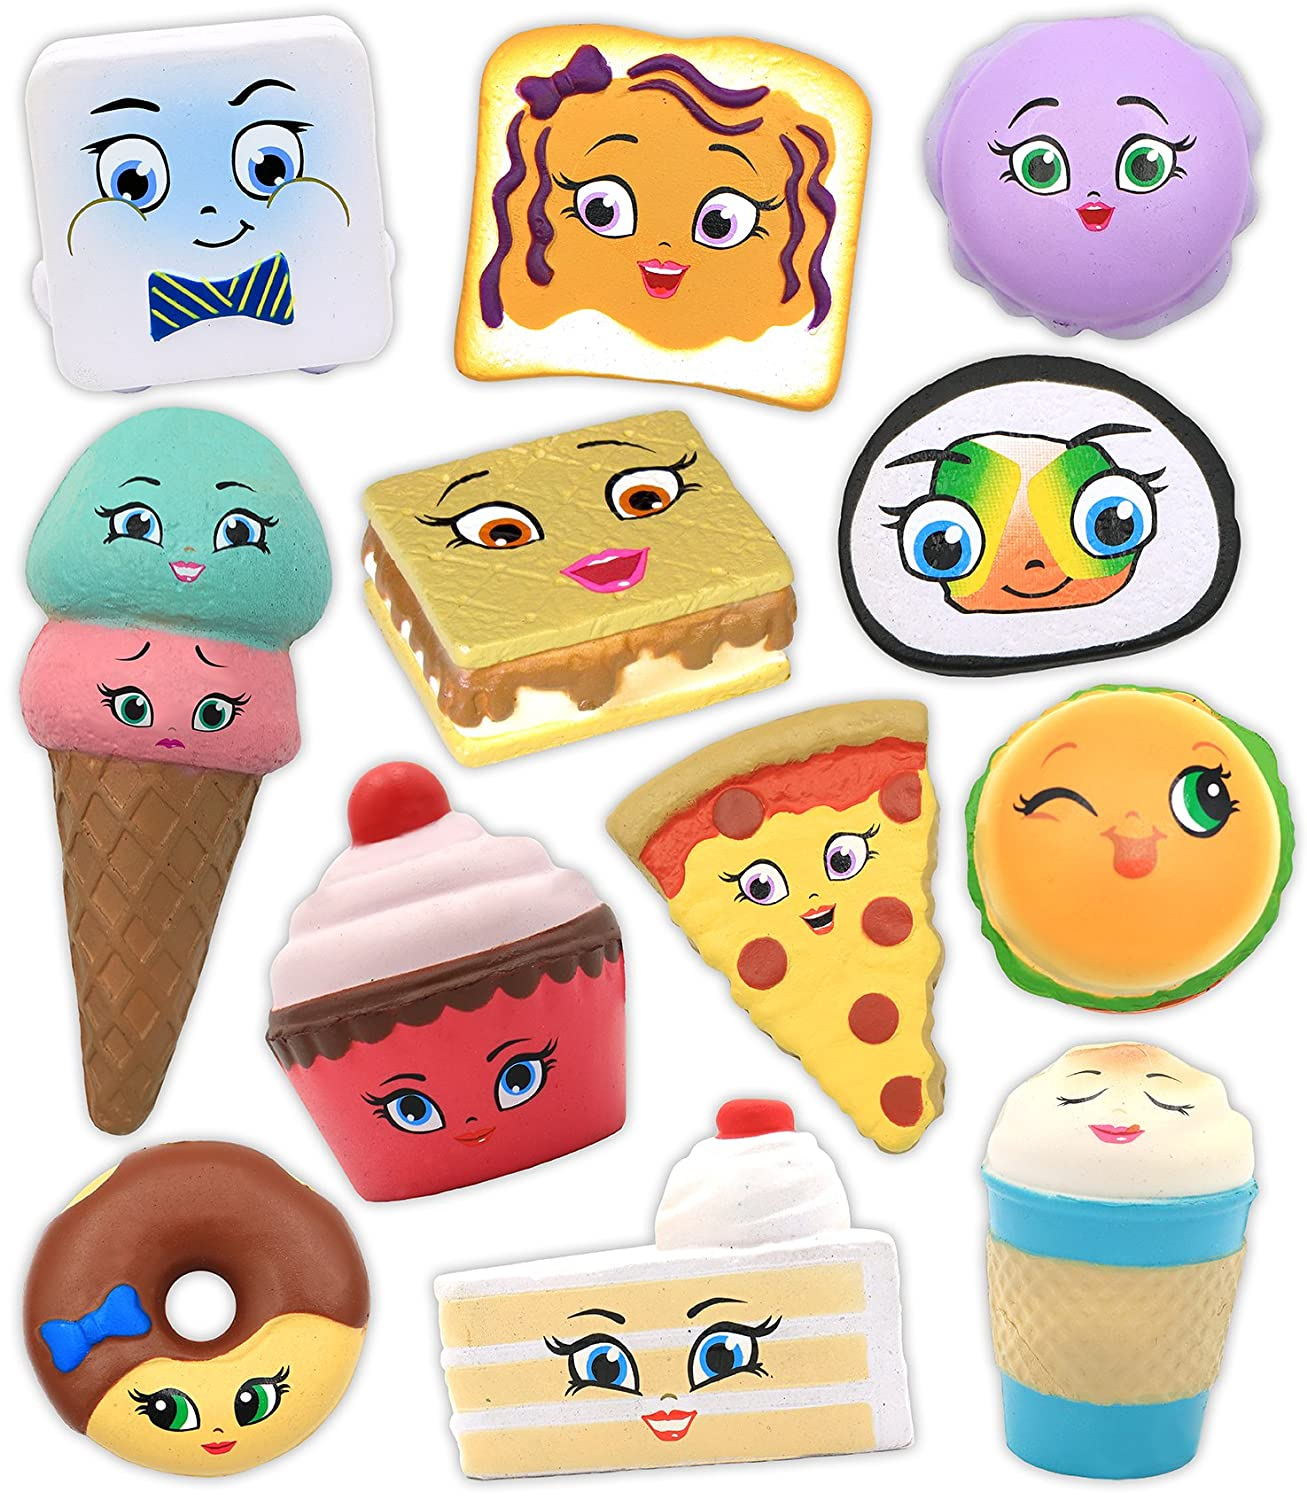 Full Case of 20 Kawaii Squeezies Series 4 Blind Box Accessories Squishy Toy New